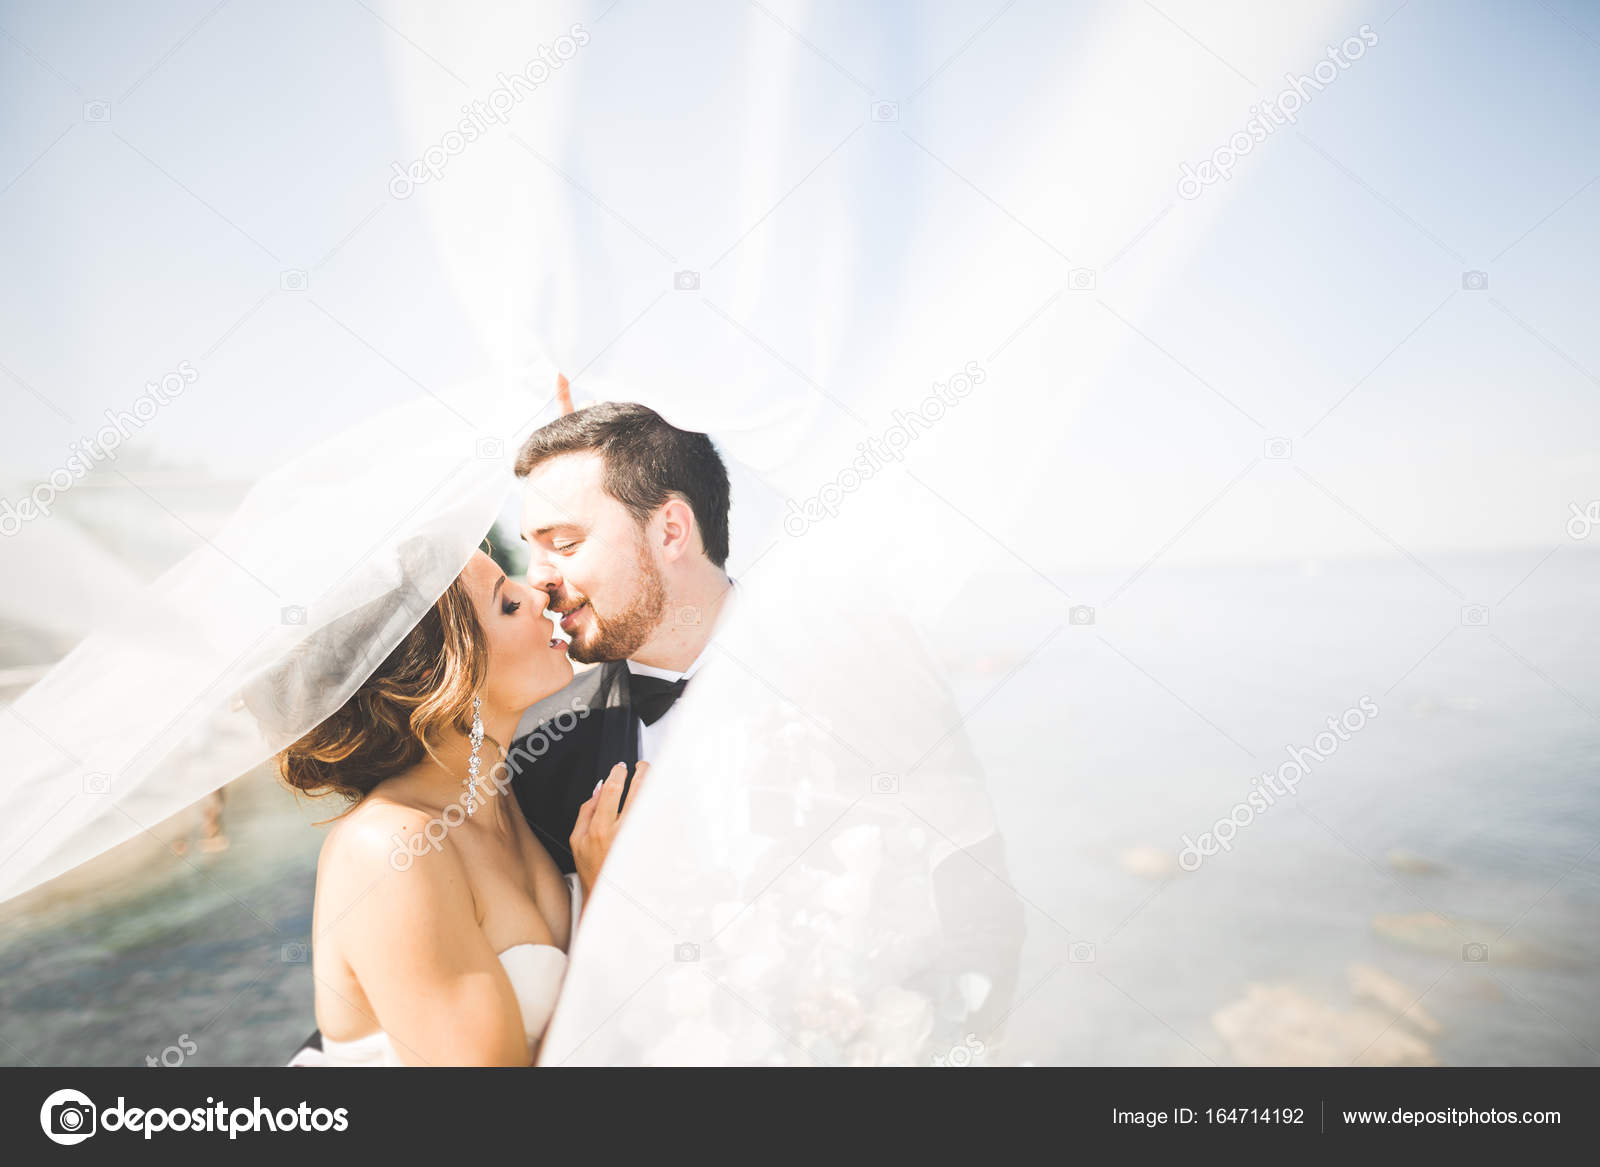 Happy And Romantic Scene Of Just Married Young Wedding Couple Posing